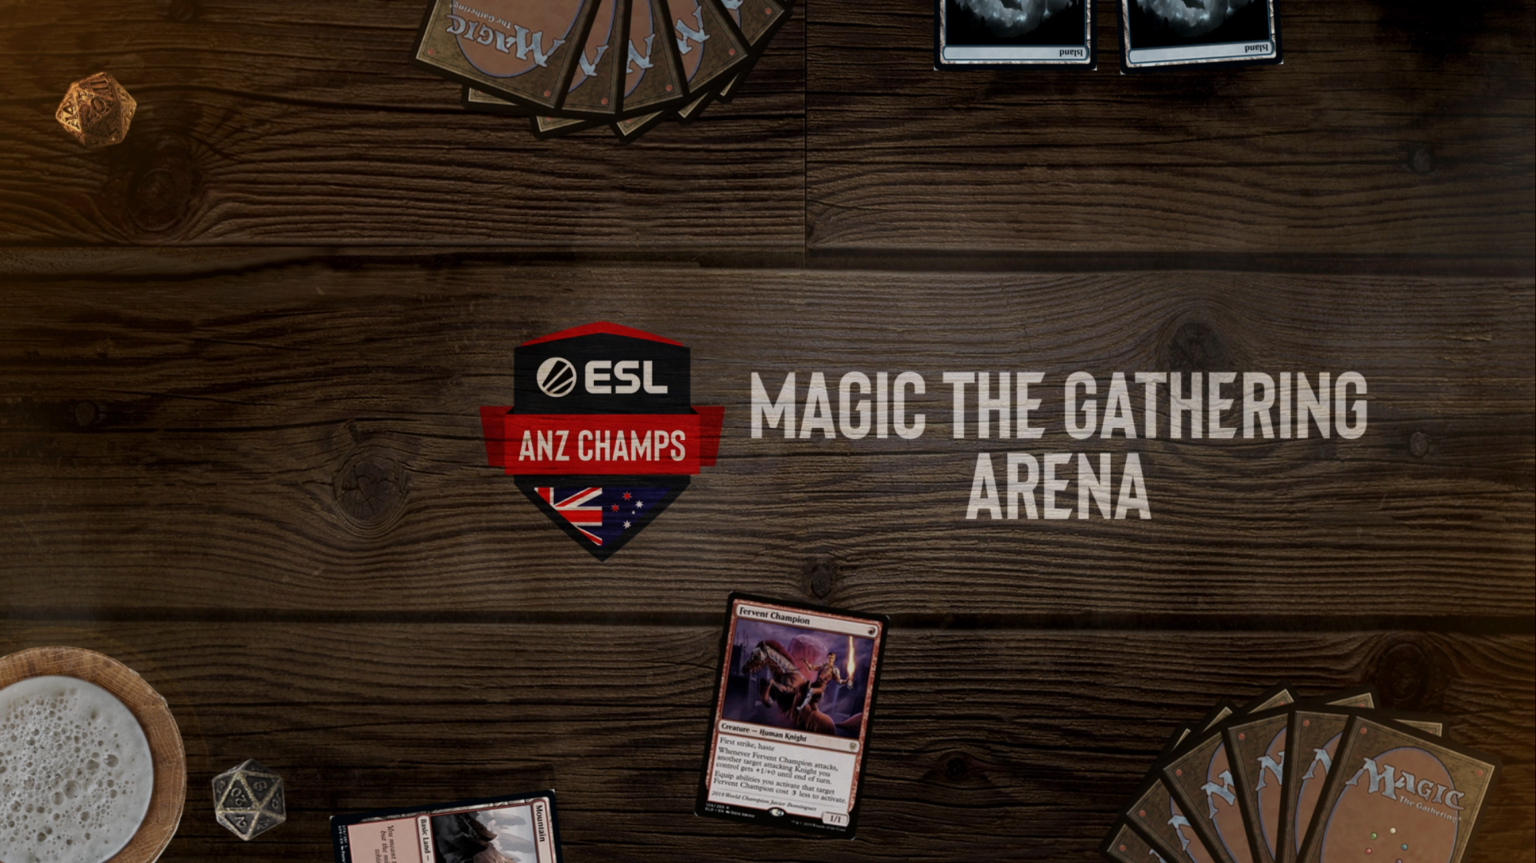 Magic The Gathering Arena Logo On ESL ANZ Champs